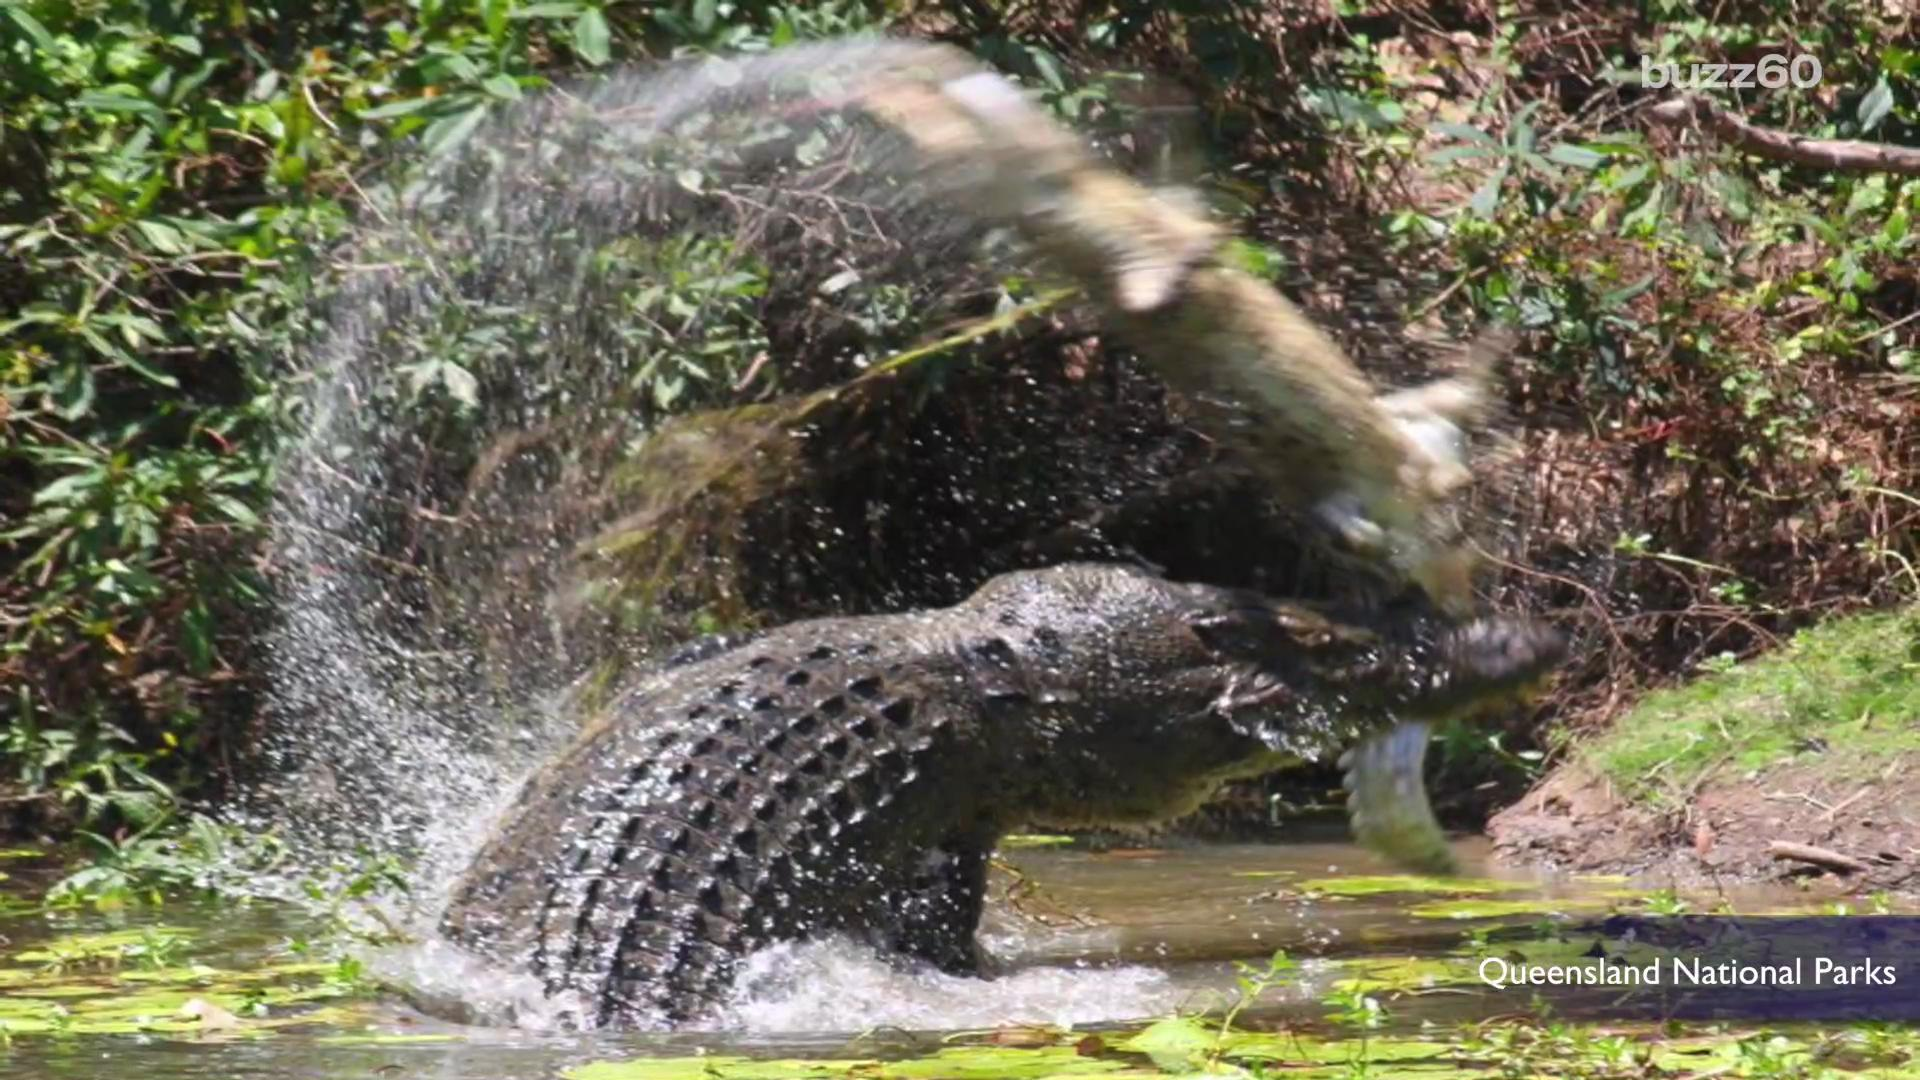 Photos show gigantic crocodile whipping and devouring fellow croc